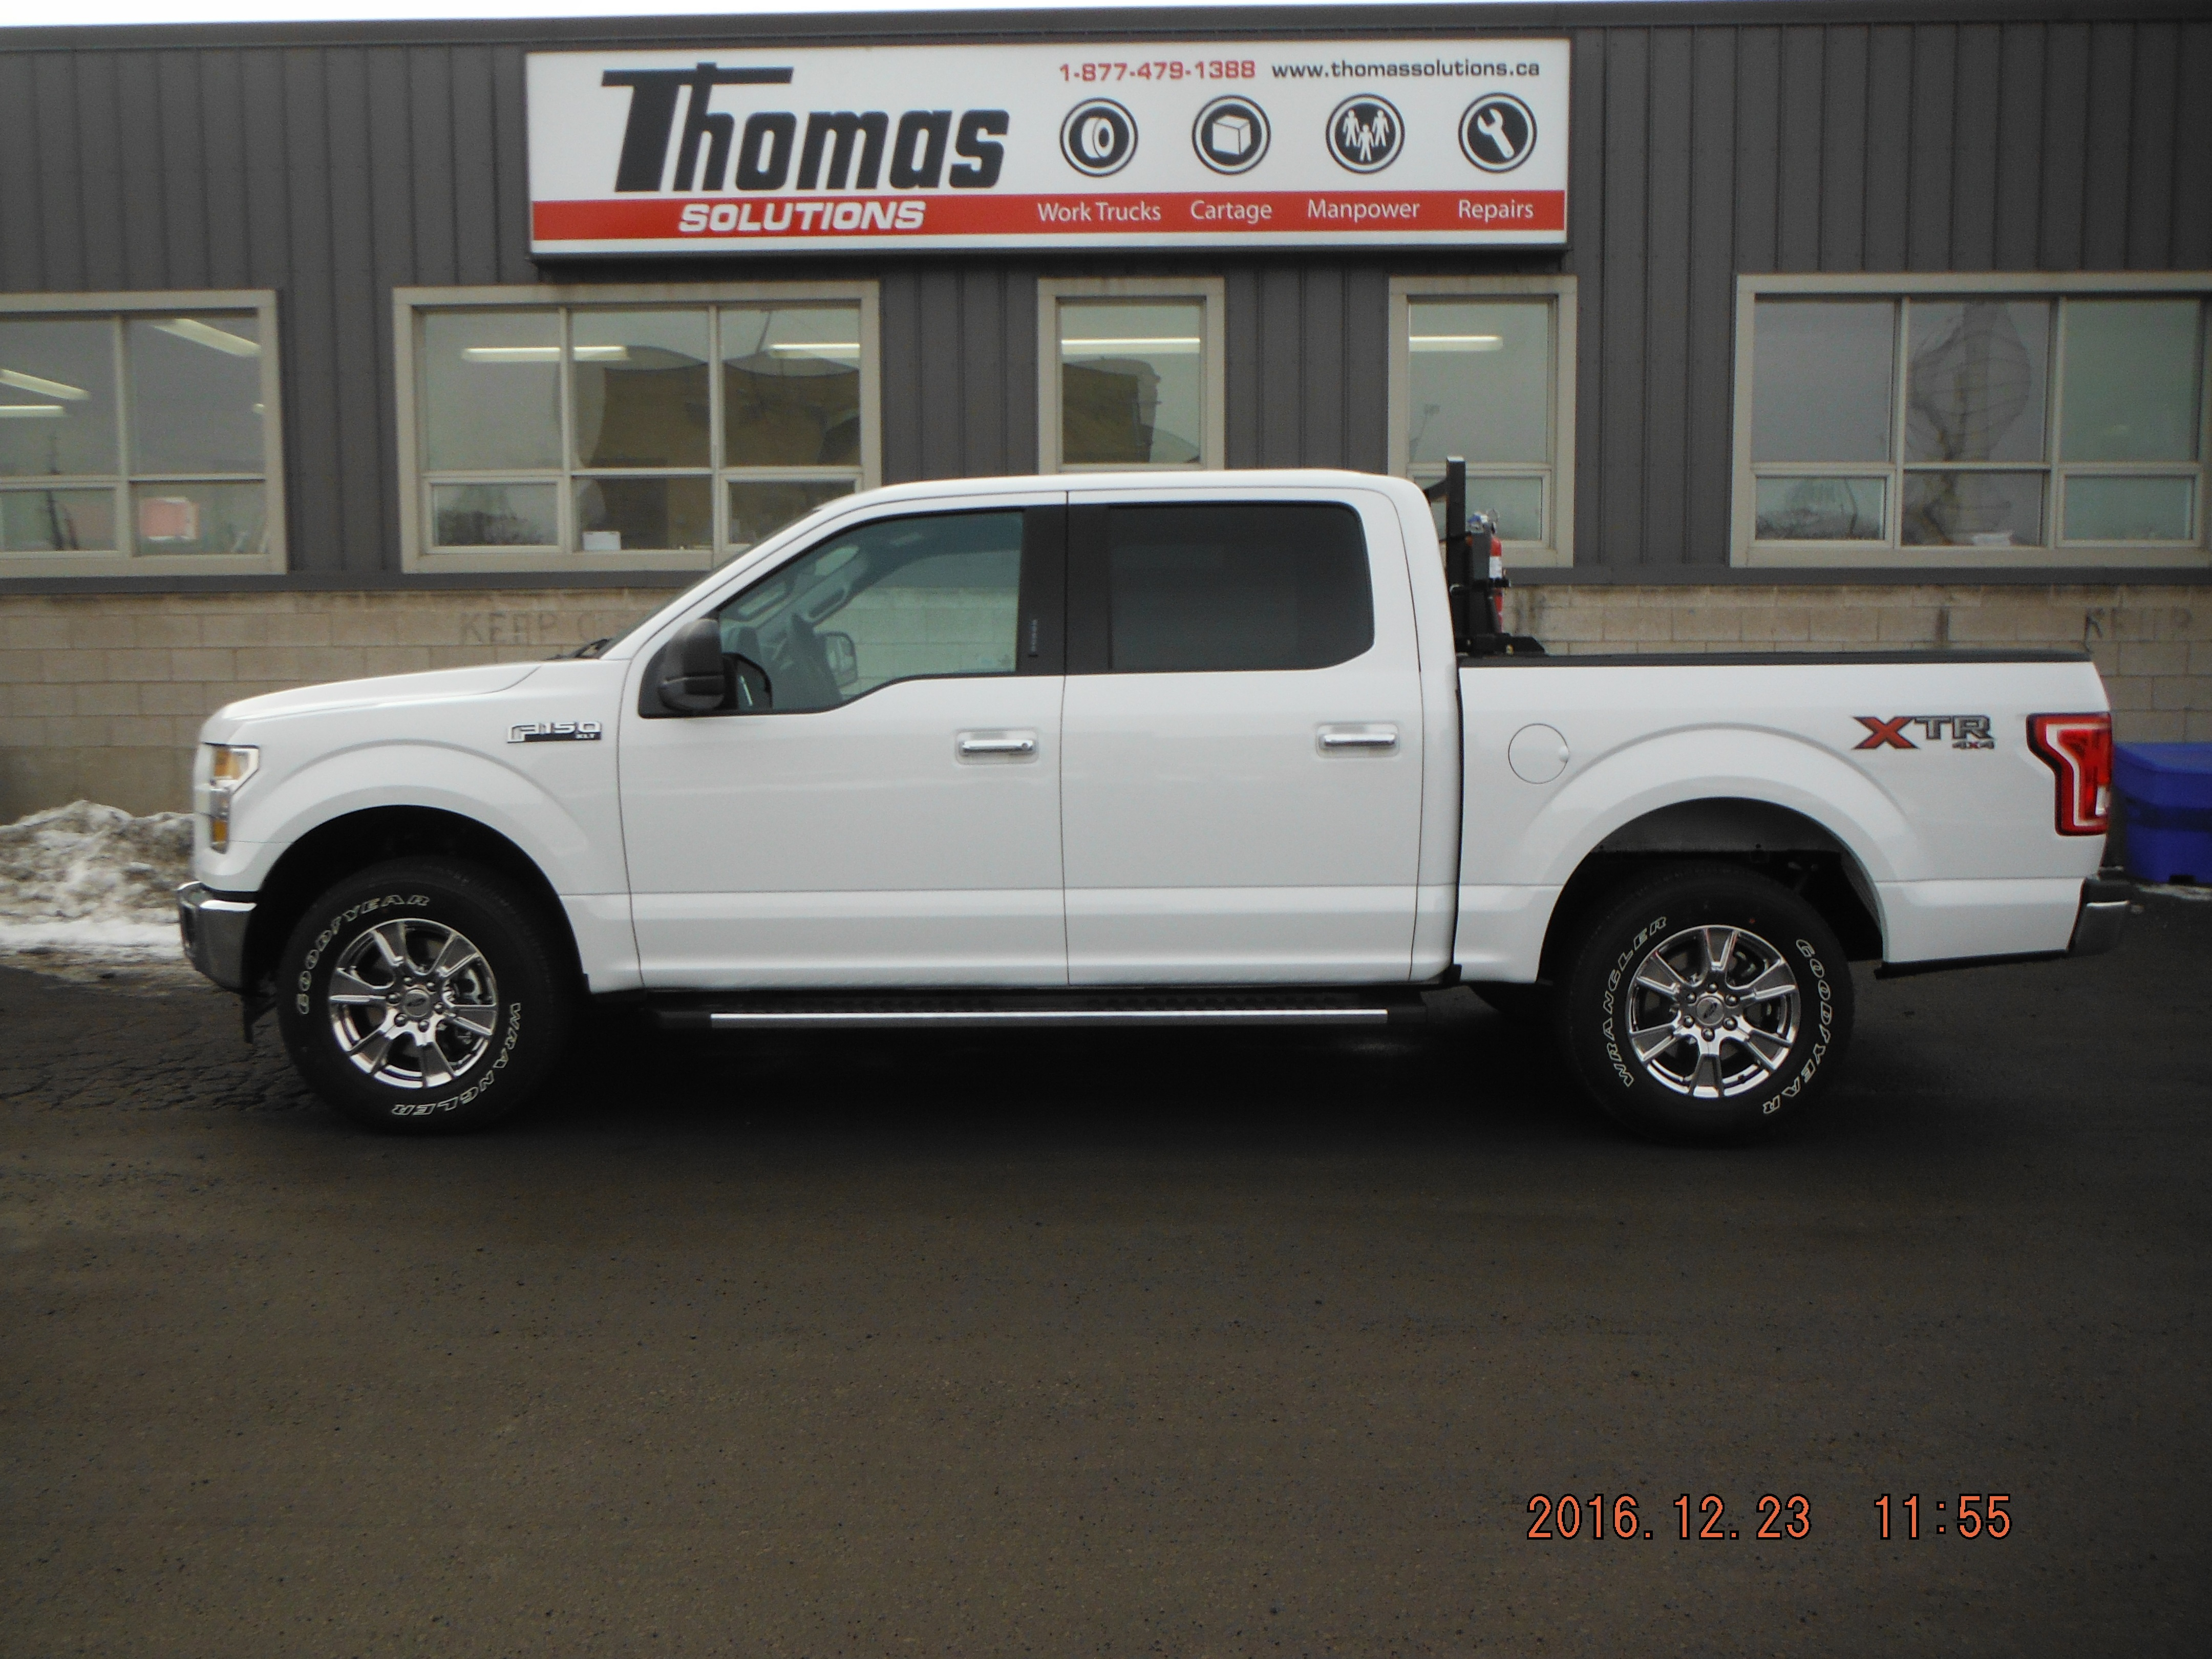 USED 2015 Ford F150 In Leduc At DK Ford AB